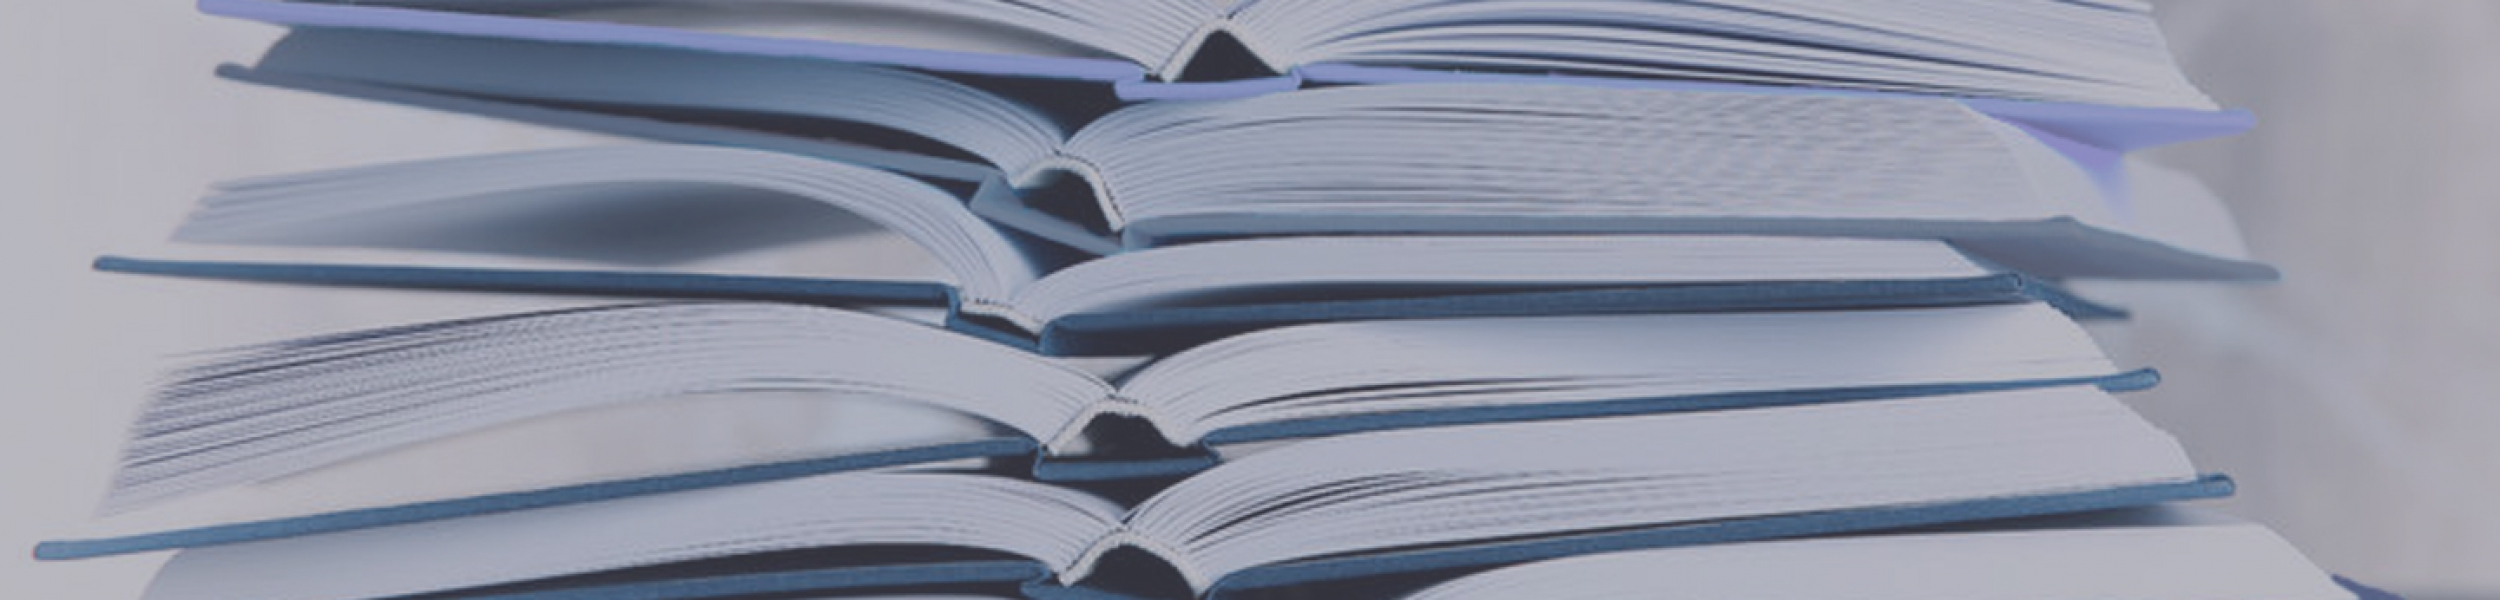 97221713 – stack of open books on light background